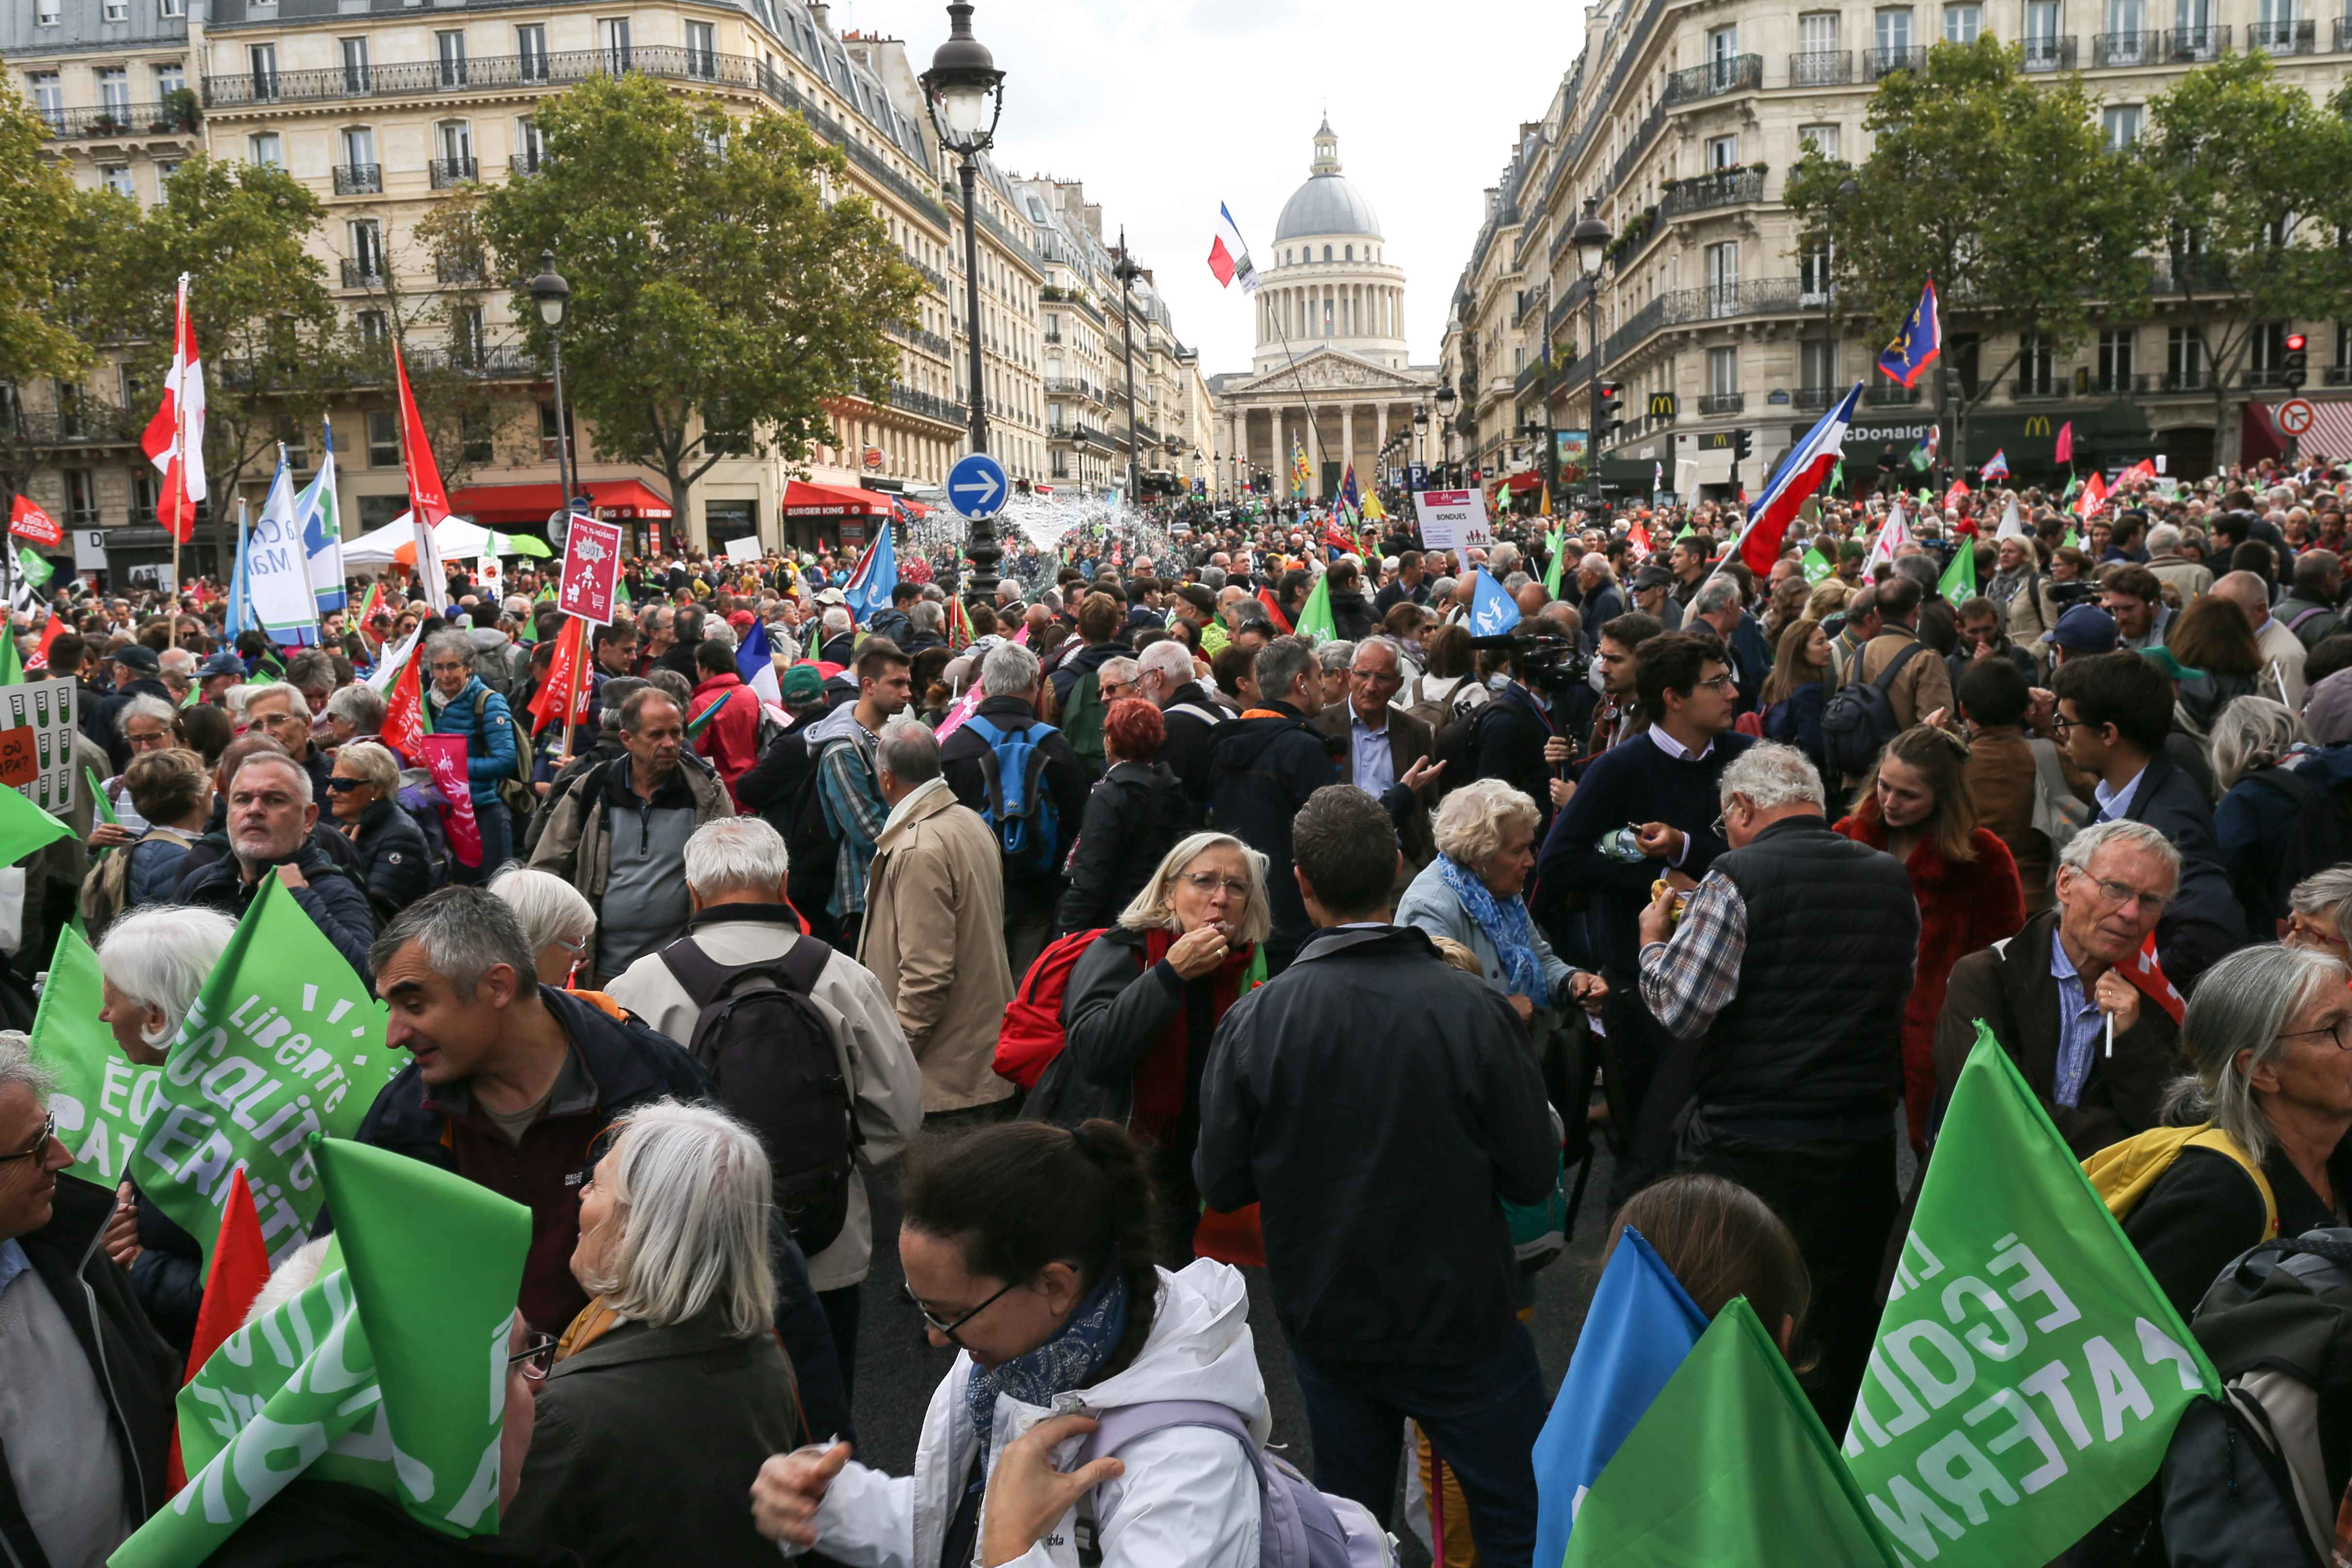 Several tens of thousands people take part in a protest against a government plan to let single women and lesbians become pregnant with fertility treatments, on October 6, 2019 in Paris. The French National Assembly on September 26, 2019 voted in favor of